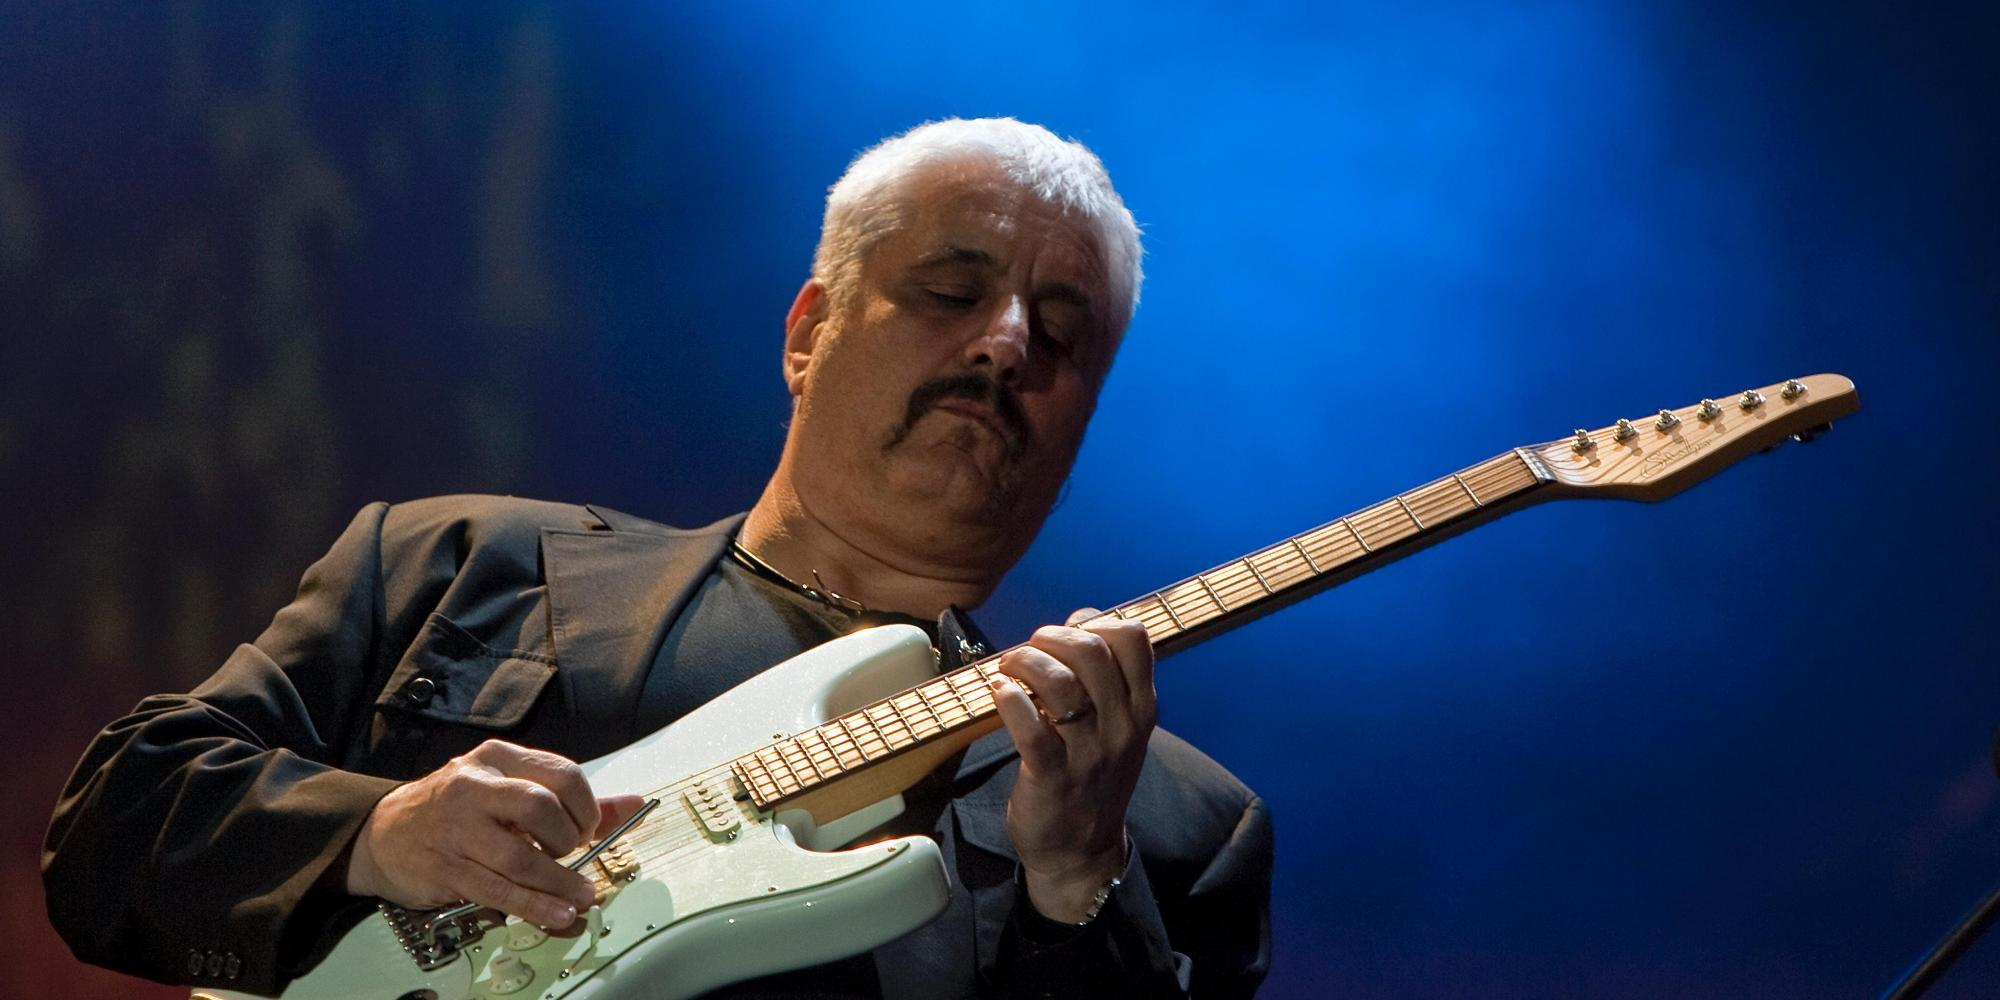 Photo of Pino Daniele, Napoli si commuove ancora: flash mob ed eventi